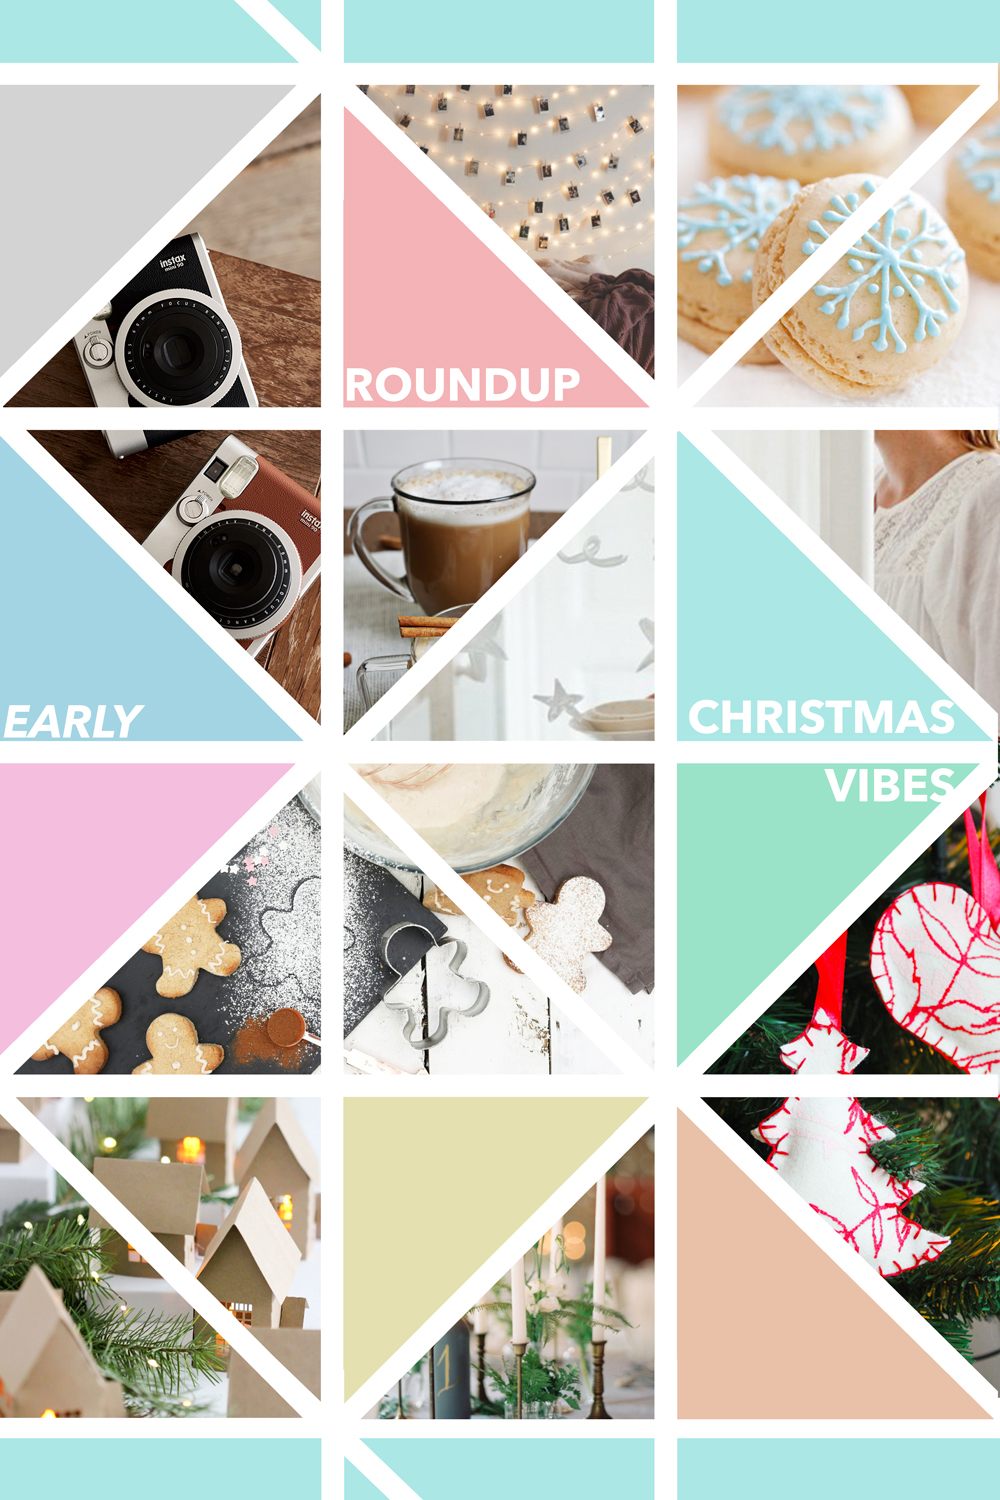 ROUNDUP | Early Christmas Vibes